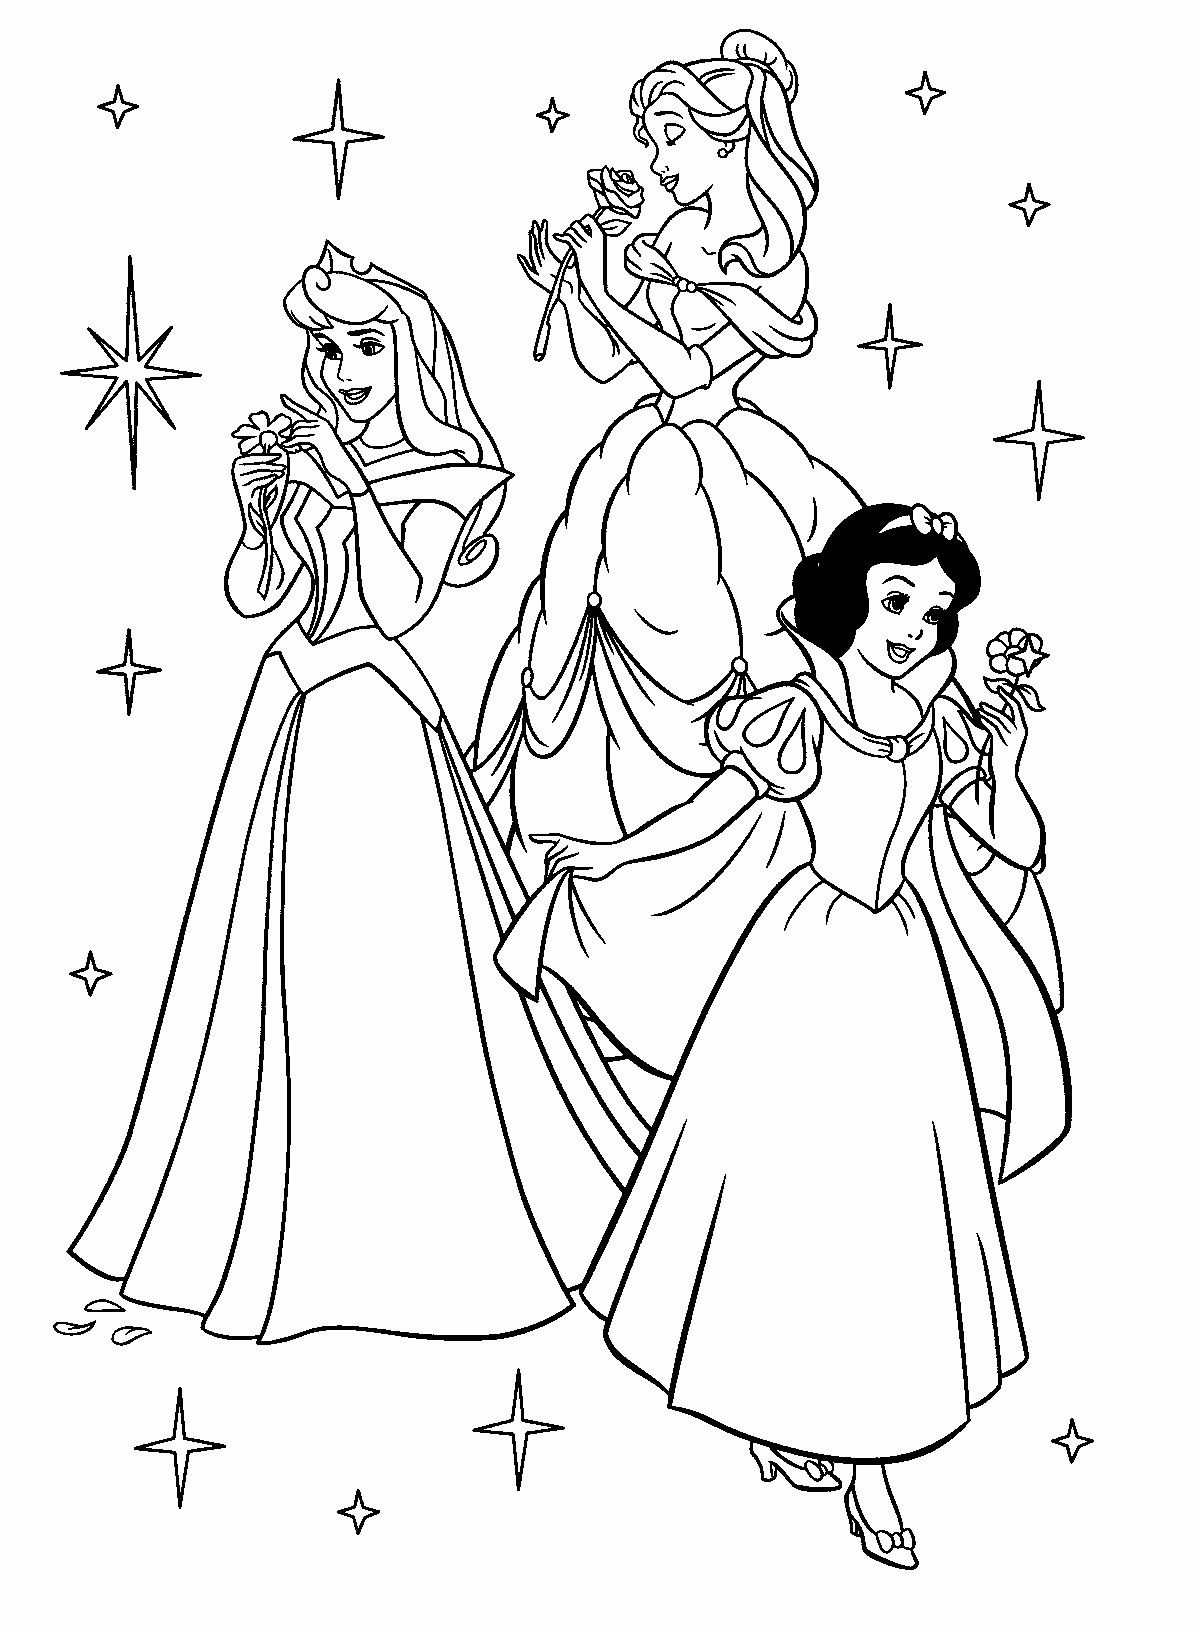 Disney Princess Coloring Pages A4 From The Thousand Photographs On The Internet Regarding Disney Princess Co Kleurplaten Disney Kleurplaten Disney Prinsessen